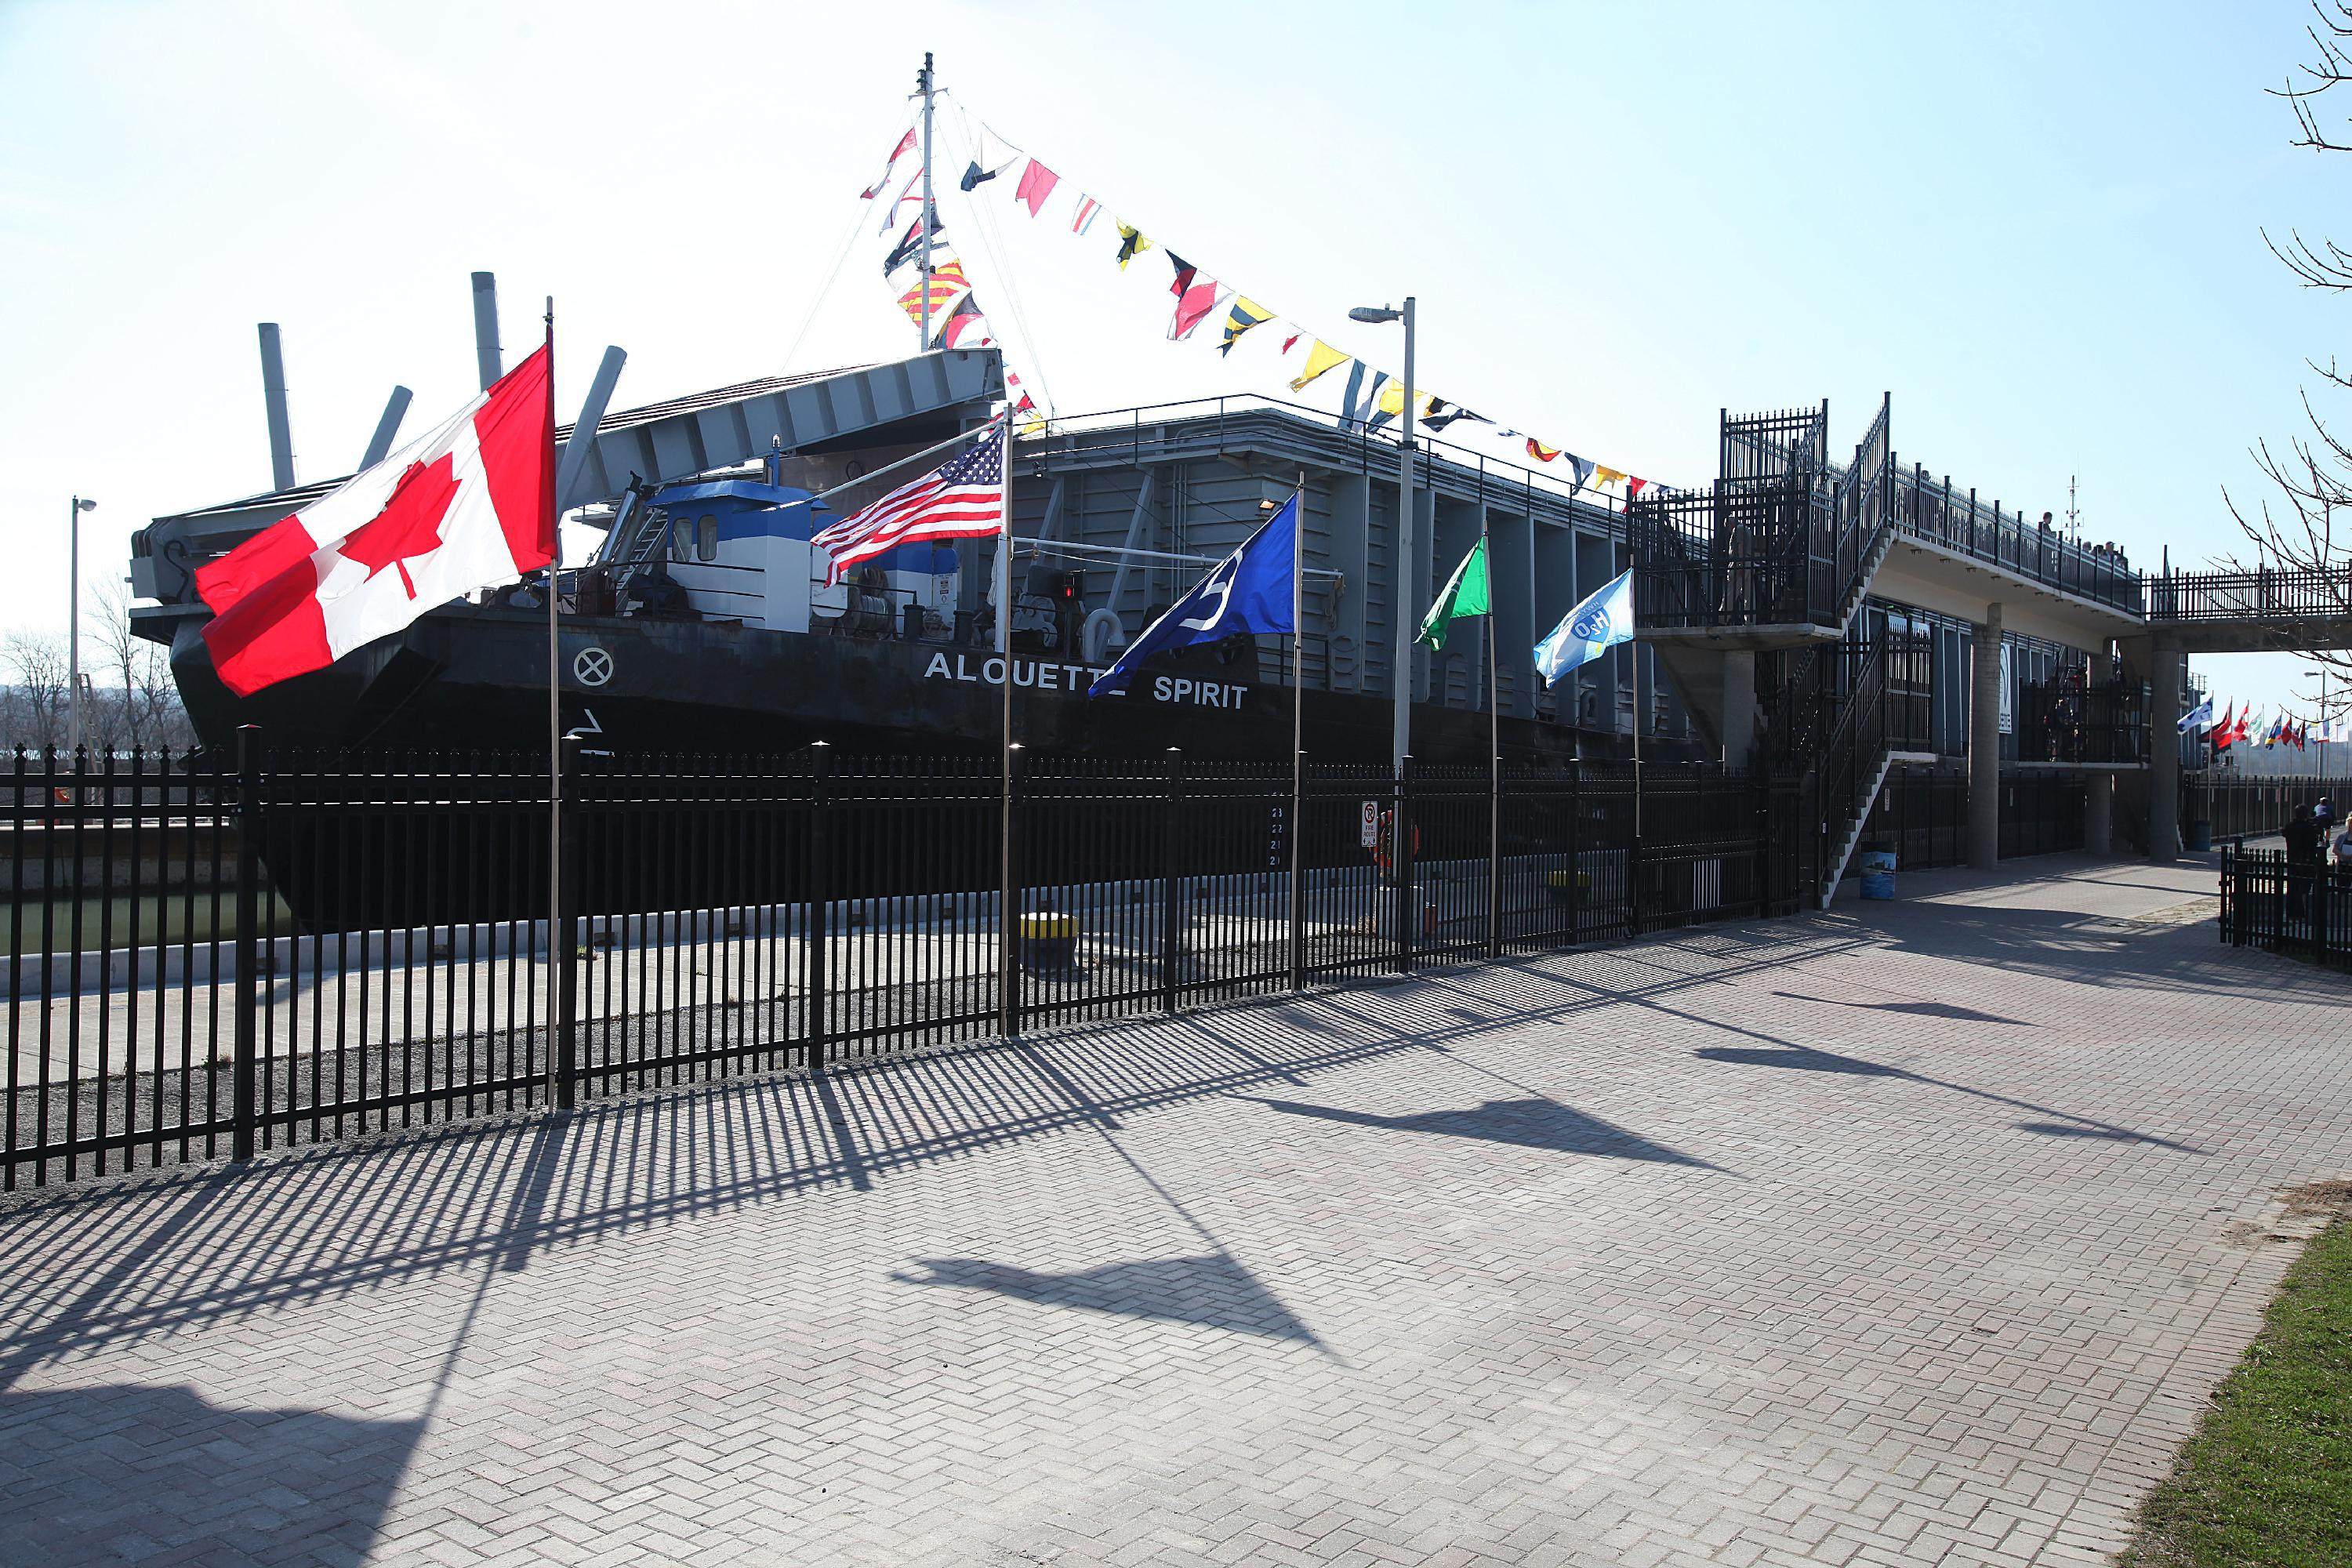 The barge Alouette Spirit, at the Welland Canals Centre, Lock 3, in St. Catharines, Ont., received 'top hat' honors in 2012. (Buffalo News file photo)